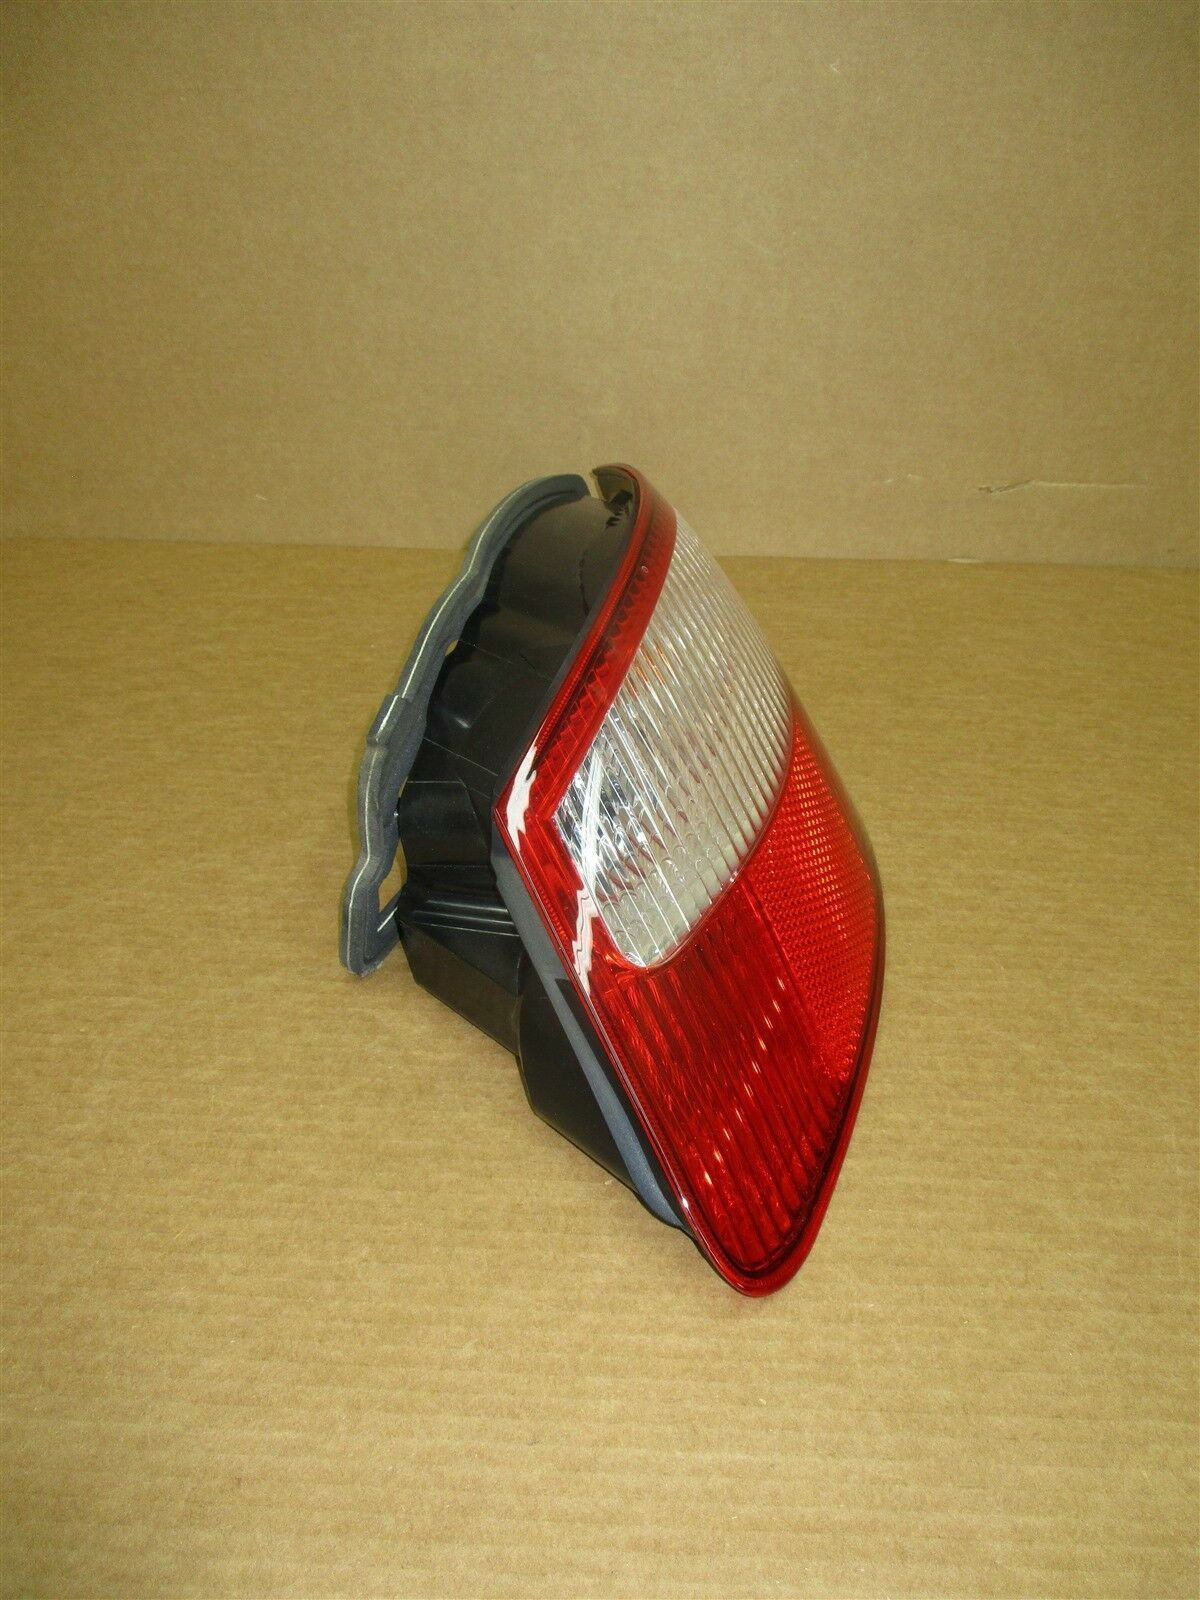 05 Boxster S RWD Porsche 987 R TAIL LIGHT TAILLIGHT 98763142402 PASSENGER 18,643